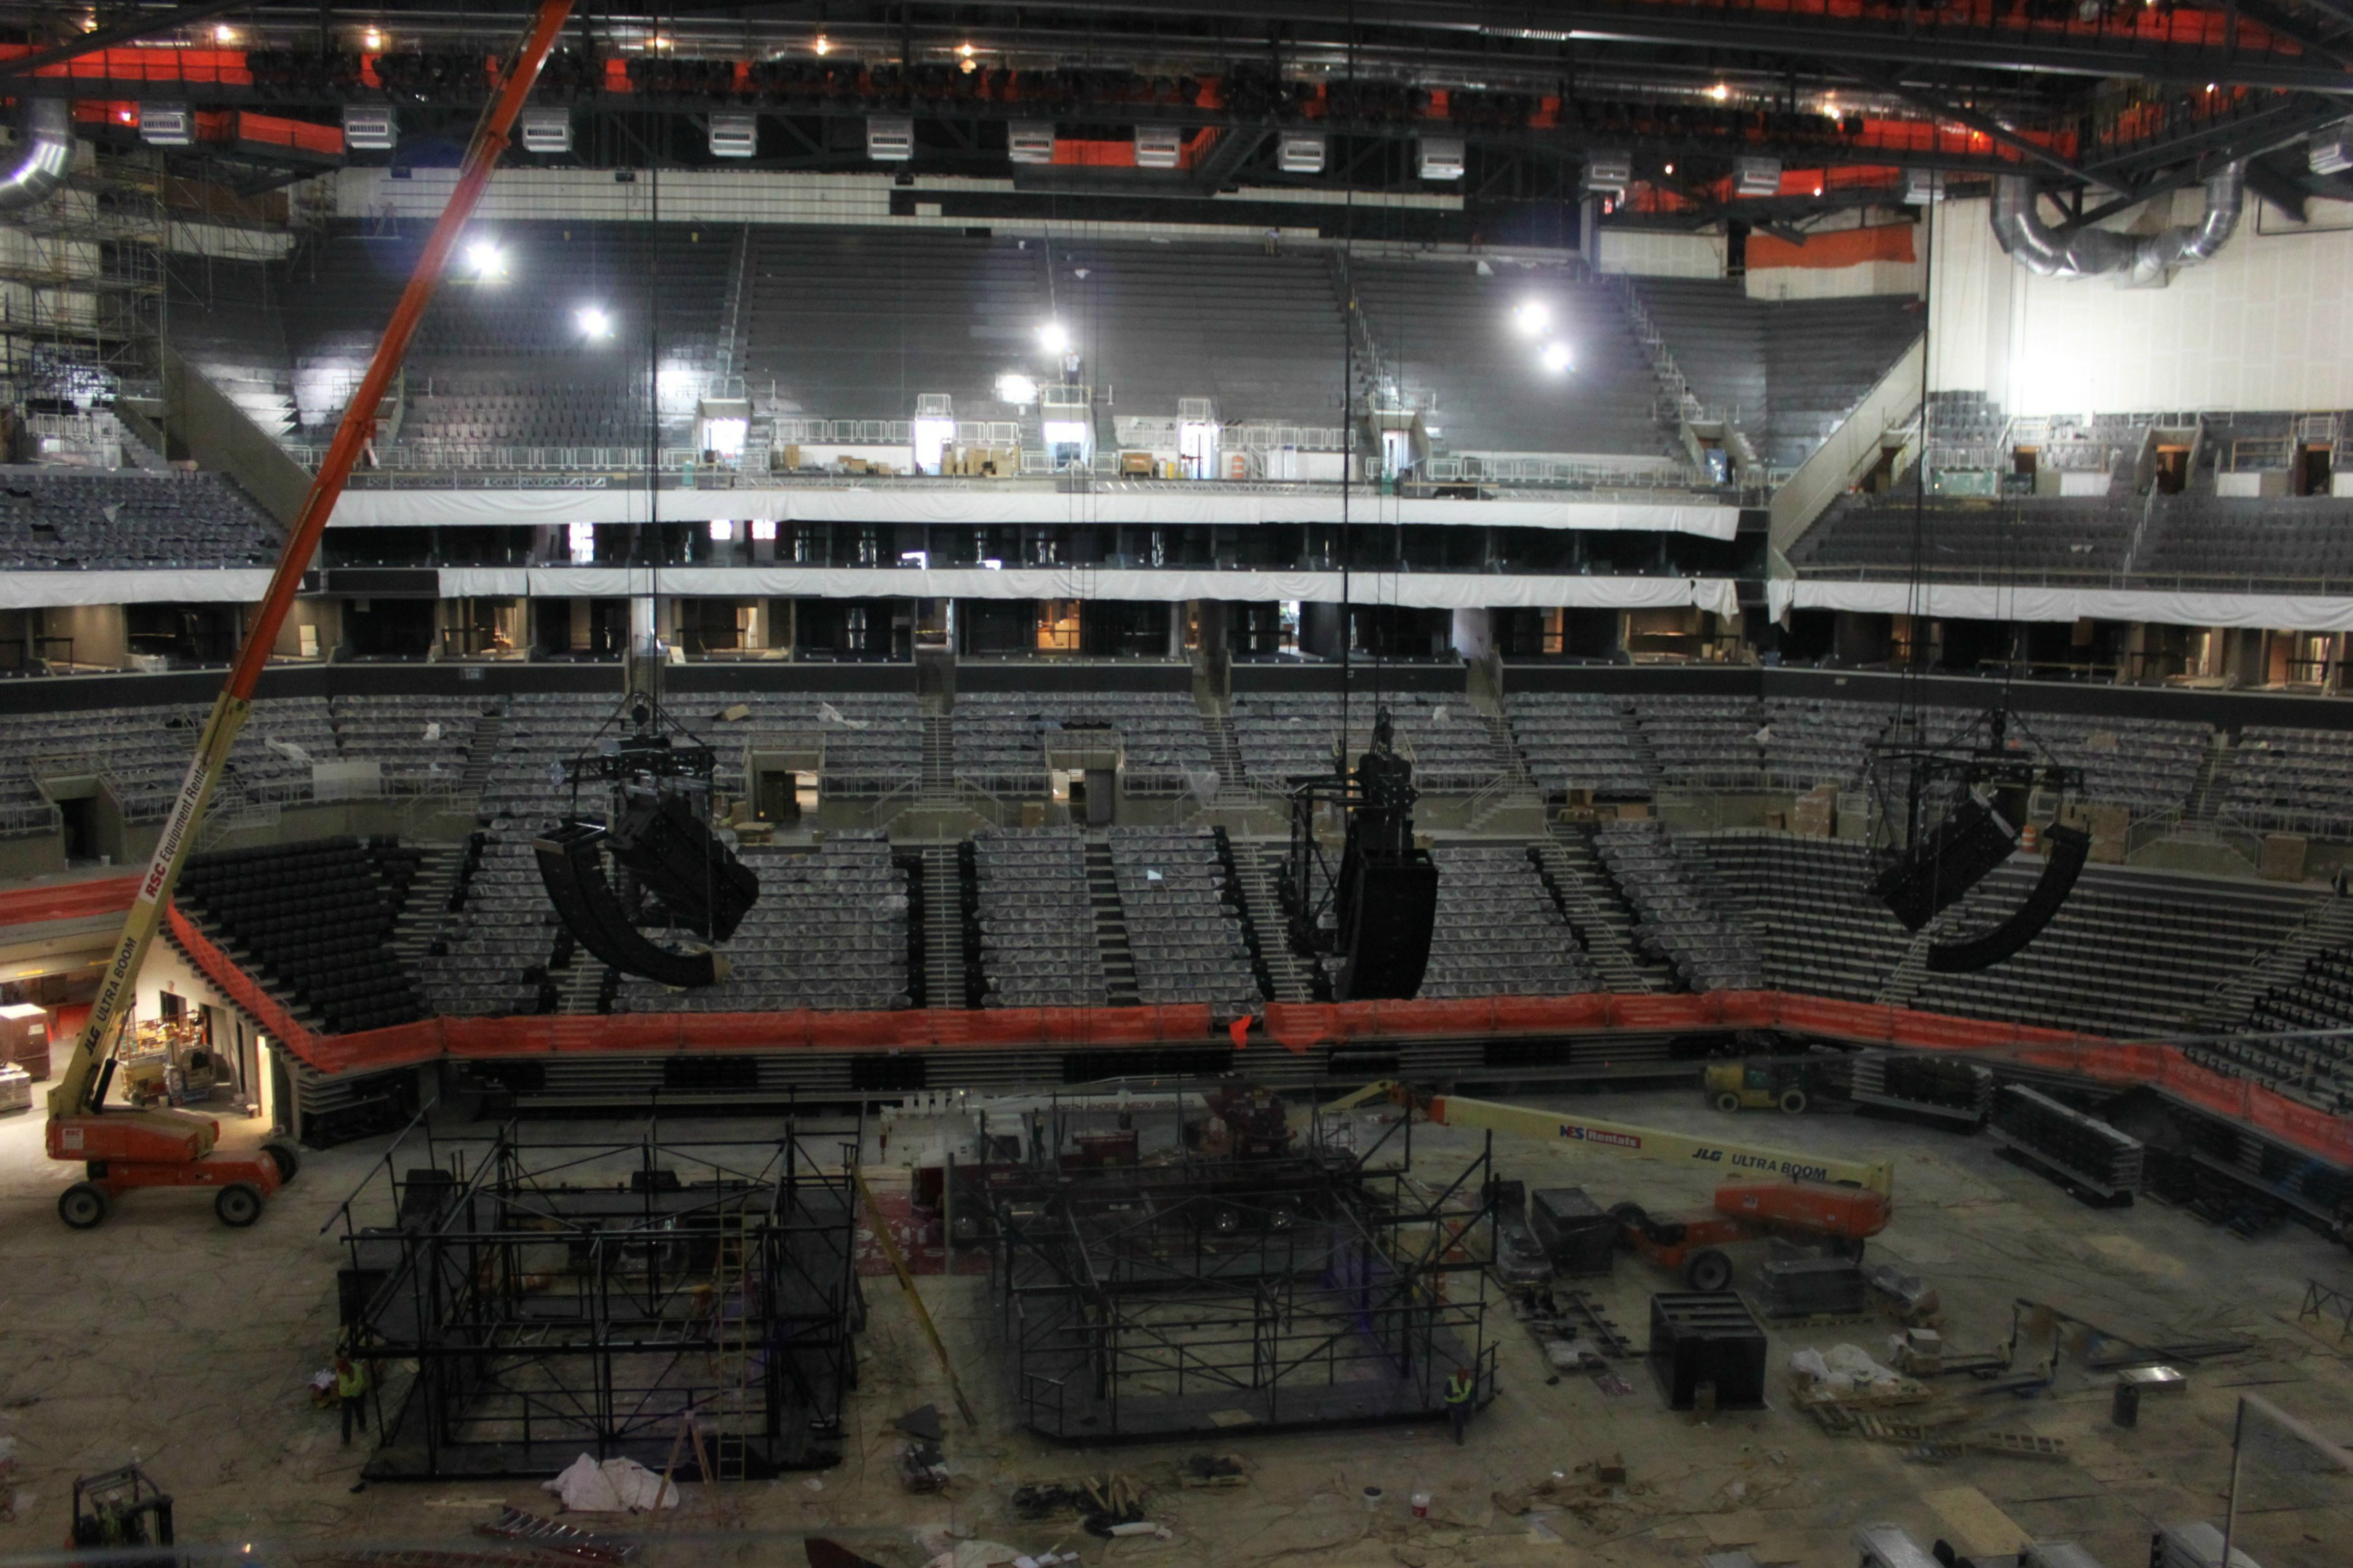 Polar Focus custom loudspeaker rigging products for EAW speakers at Barclays Center